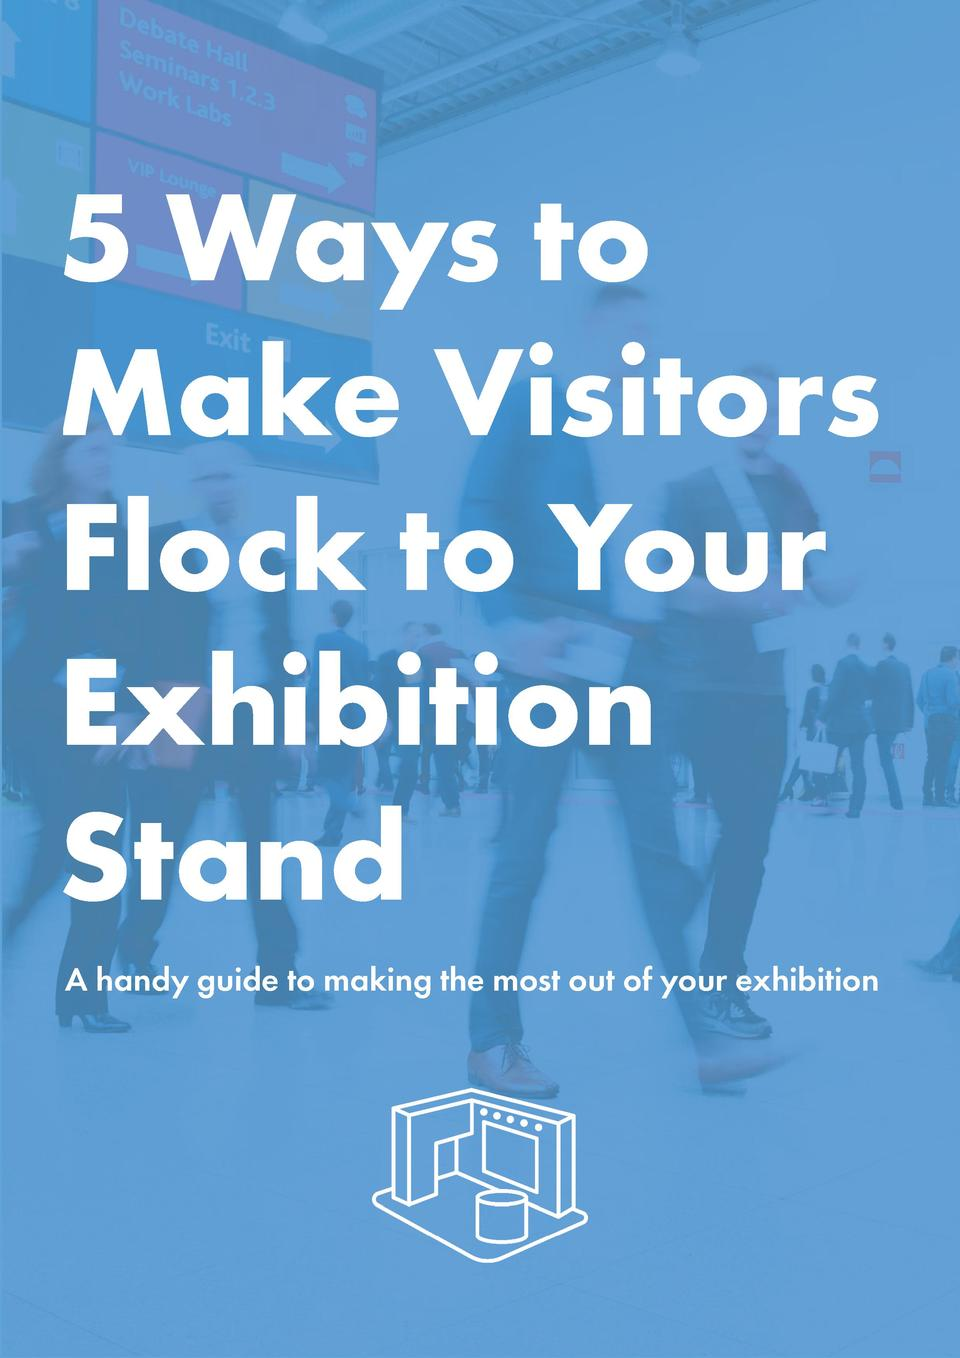 5 Ways to Make Visitors Flock to Your Exhibition Stand A handy guide to making the most out of your exhibition